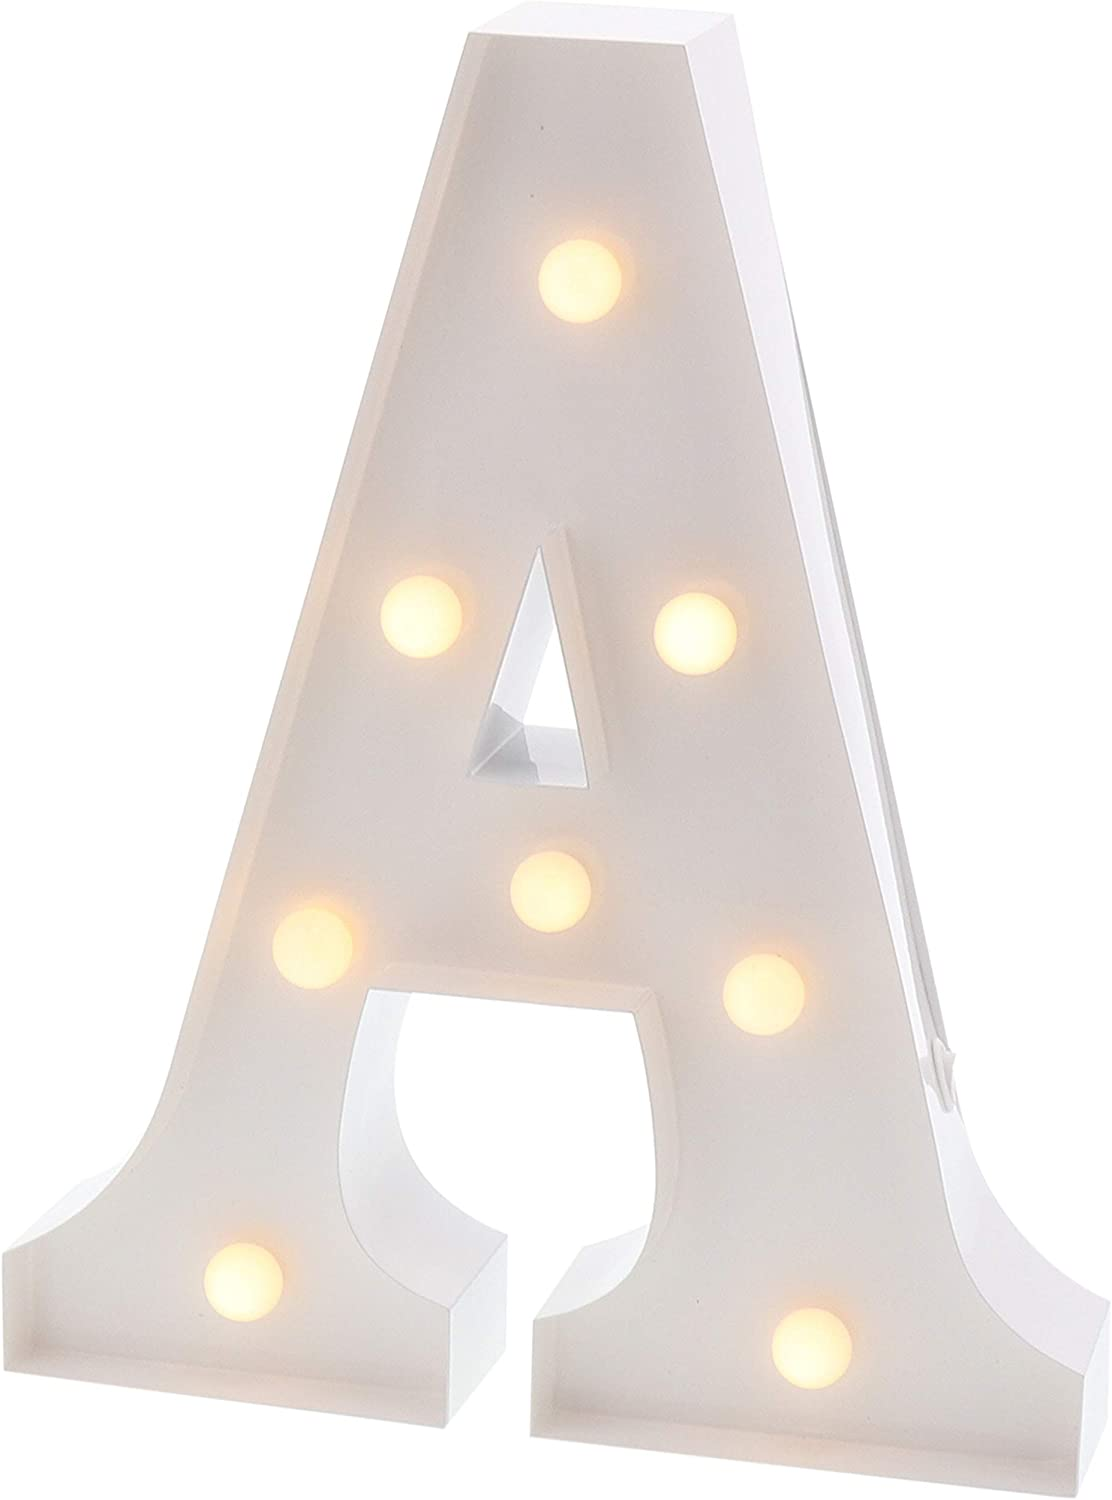 "Barnyard Designs Metal Marquee Letter A Light Up Wall Initial Wedding, Bar, Home and Nursery Letter Decoration 12"" (White)"